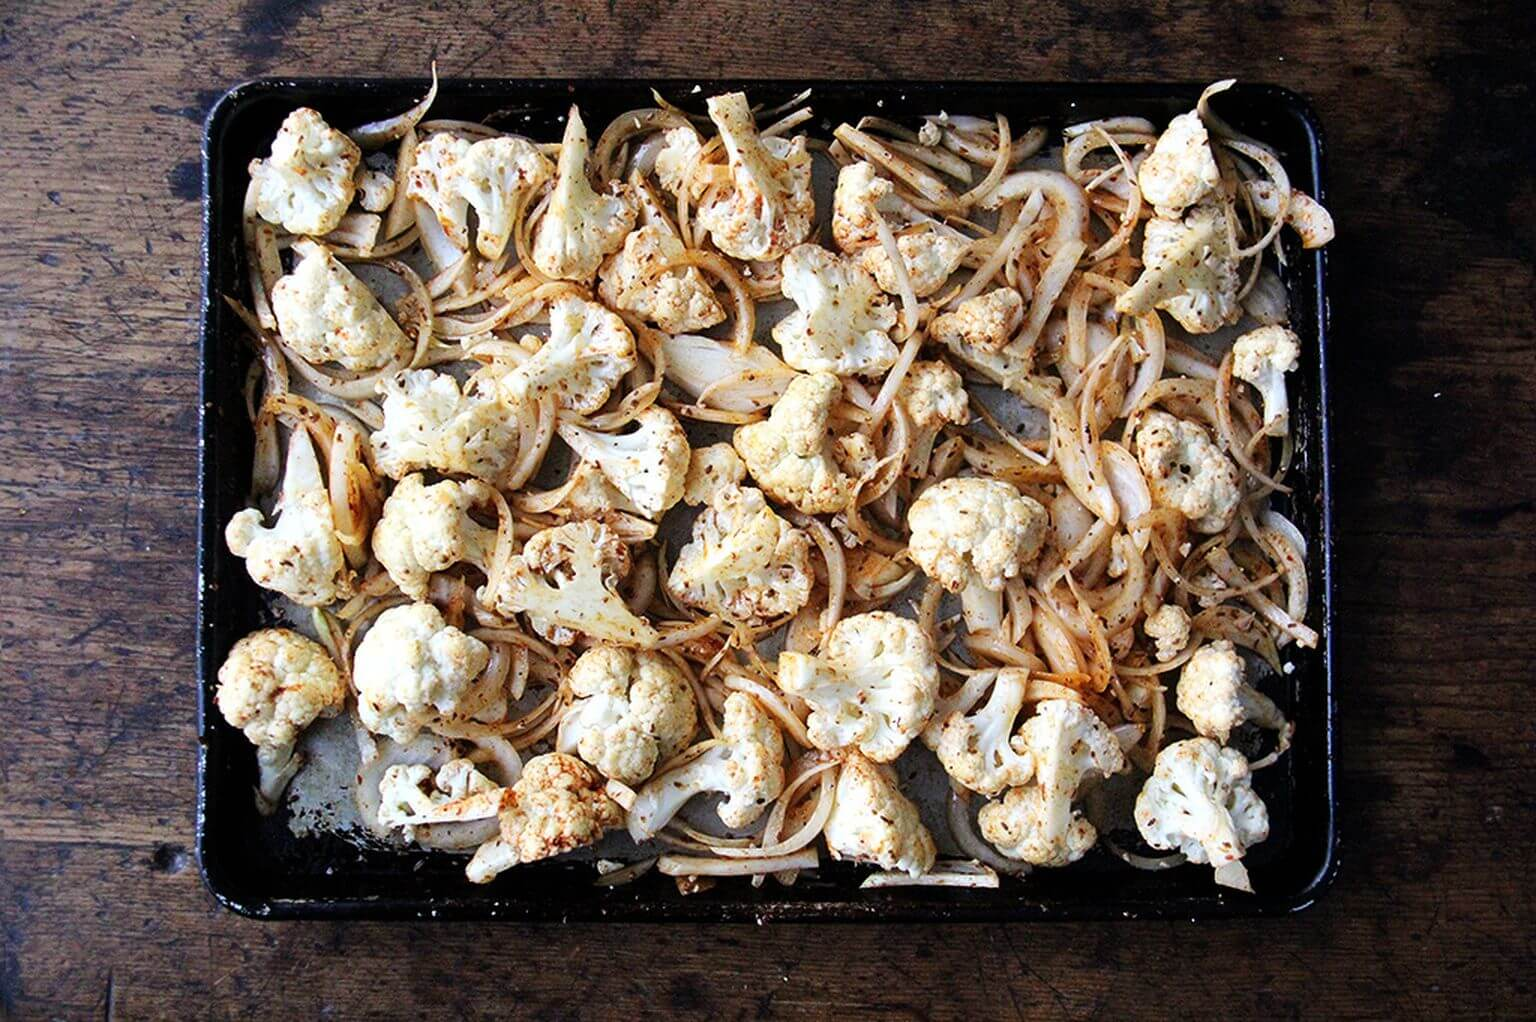 A sheet pan of cauliflower and onions with shawarma spices.